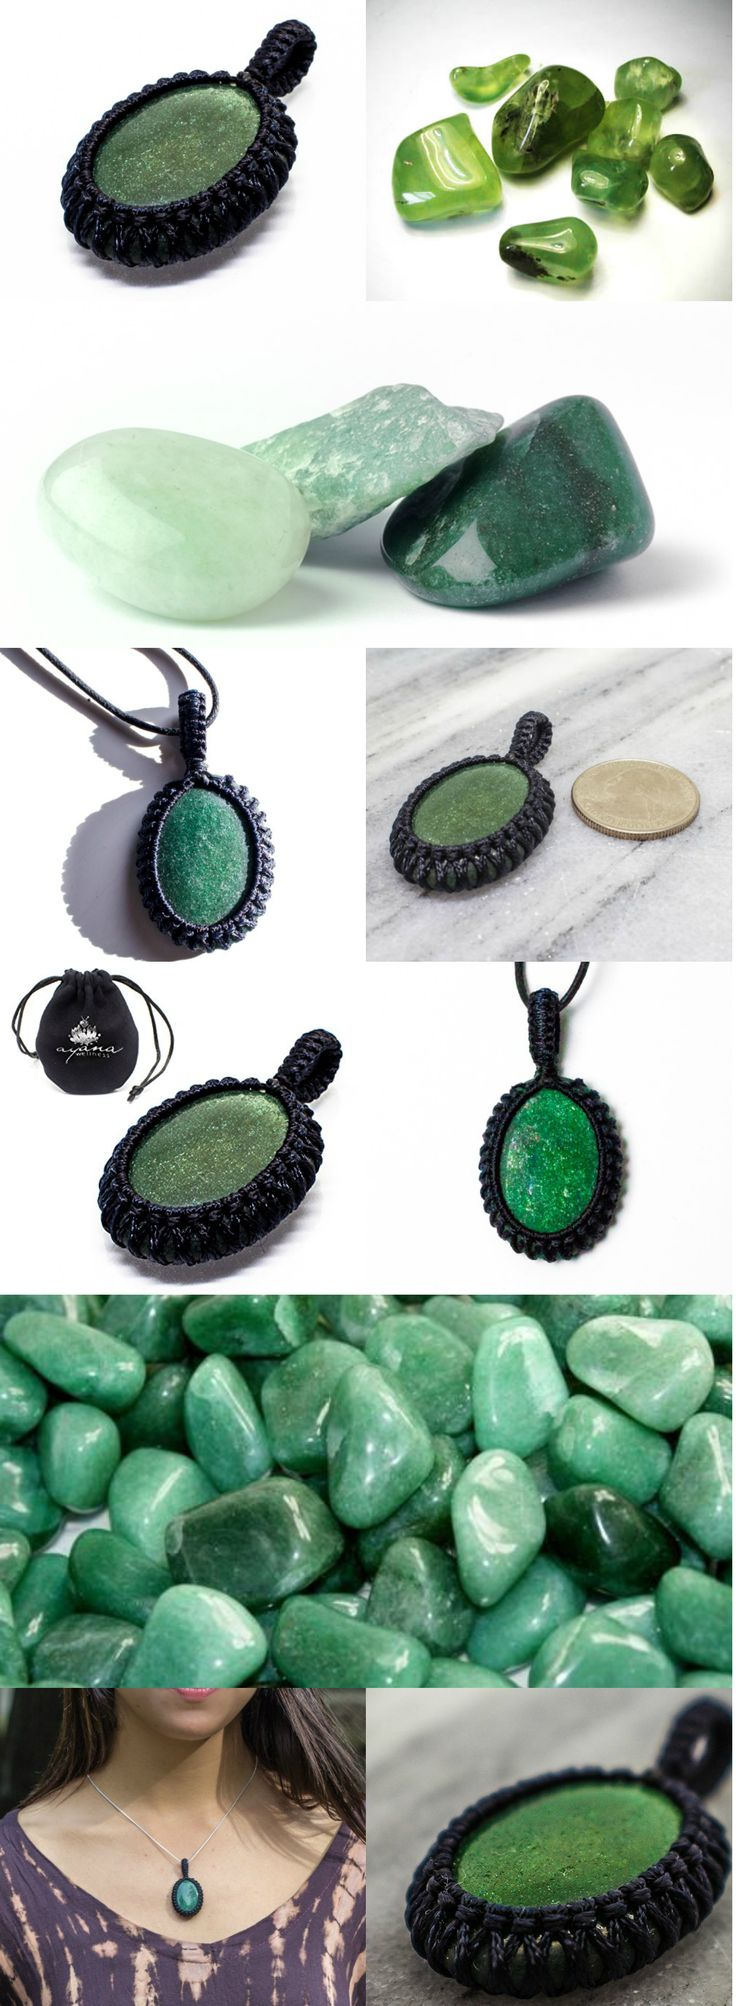 Green Aventurine allows one to journey through life with self-confidence and the capability to embrace change. Find more information about our amazing Green Aventurine Crystal Necklace at : http://ayanaproducts.com/green-aventurine-healing-necklace